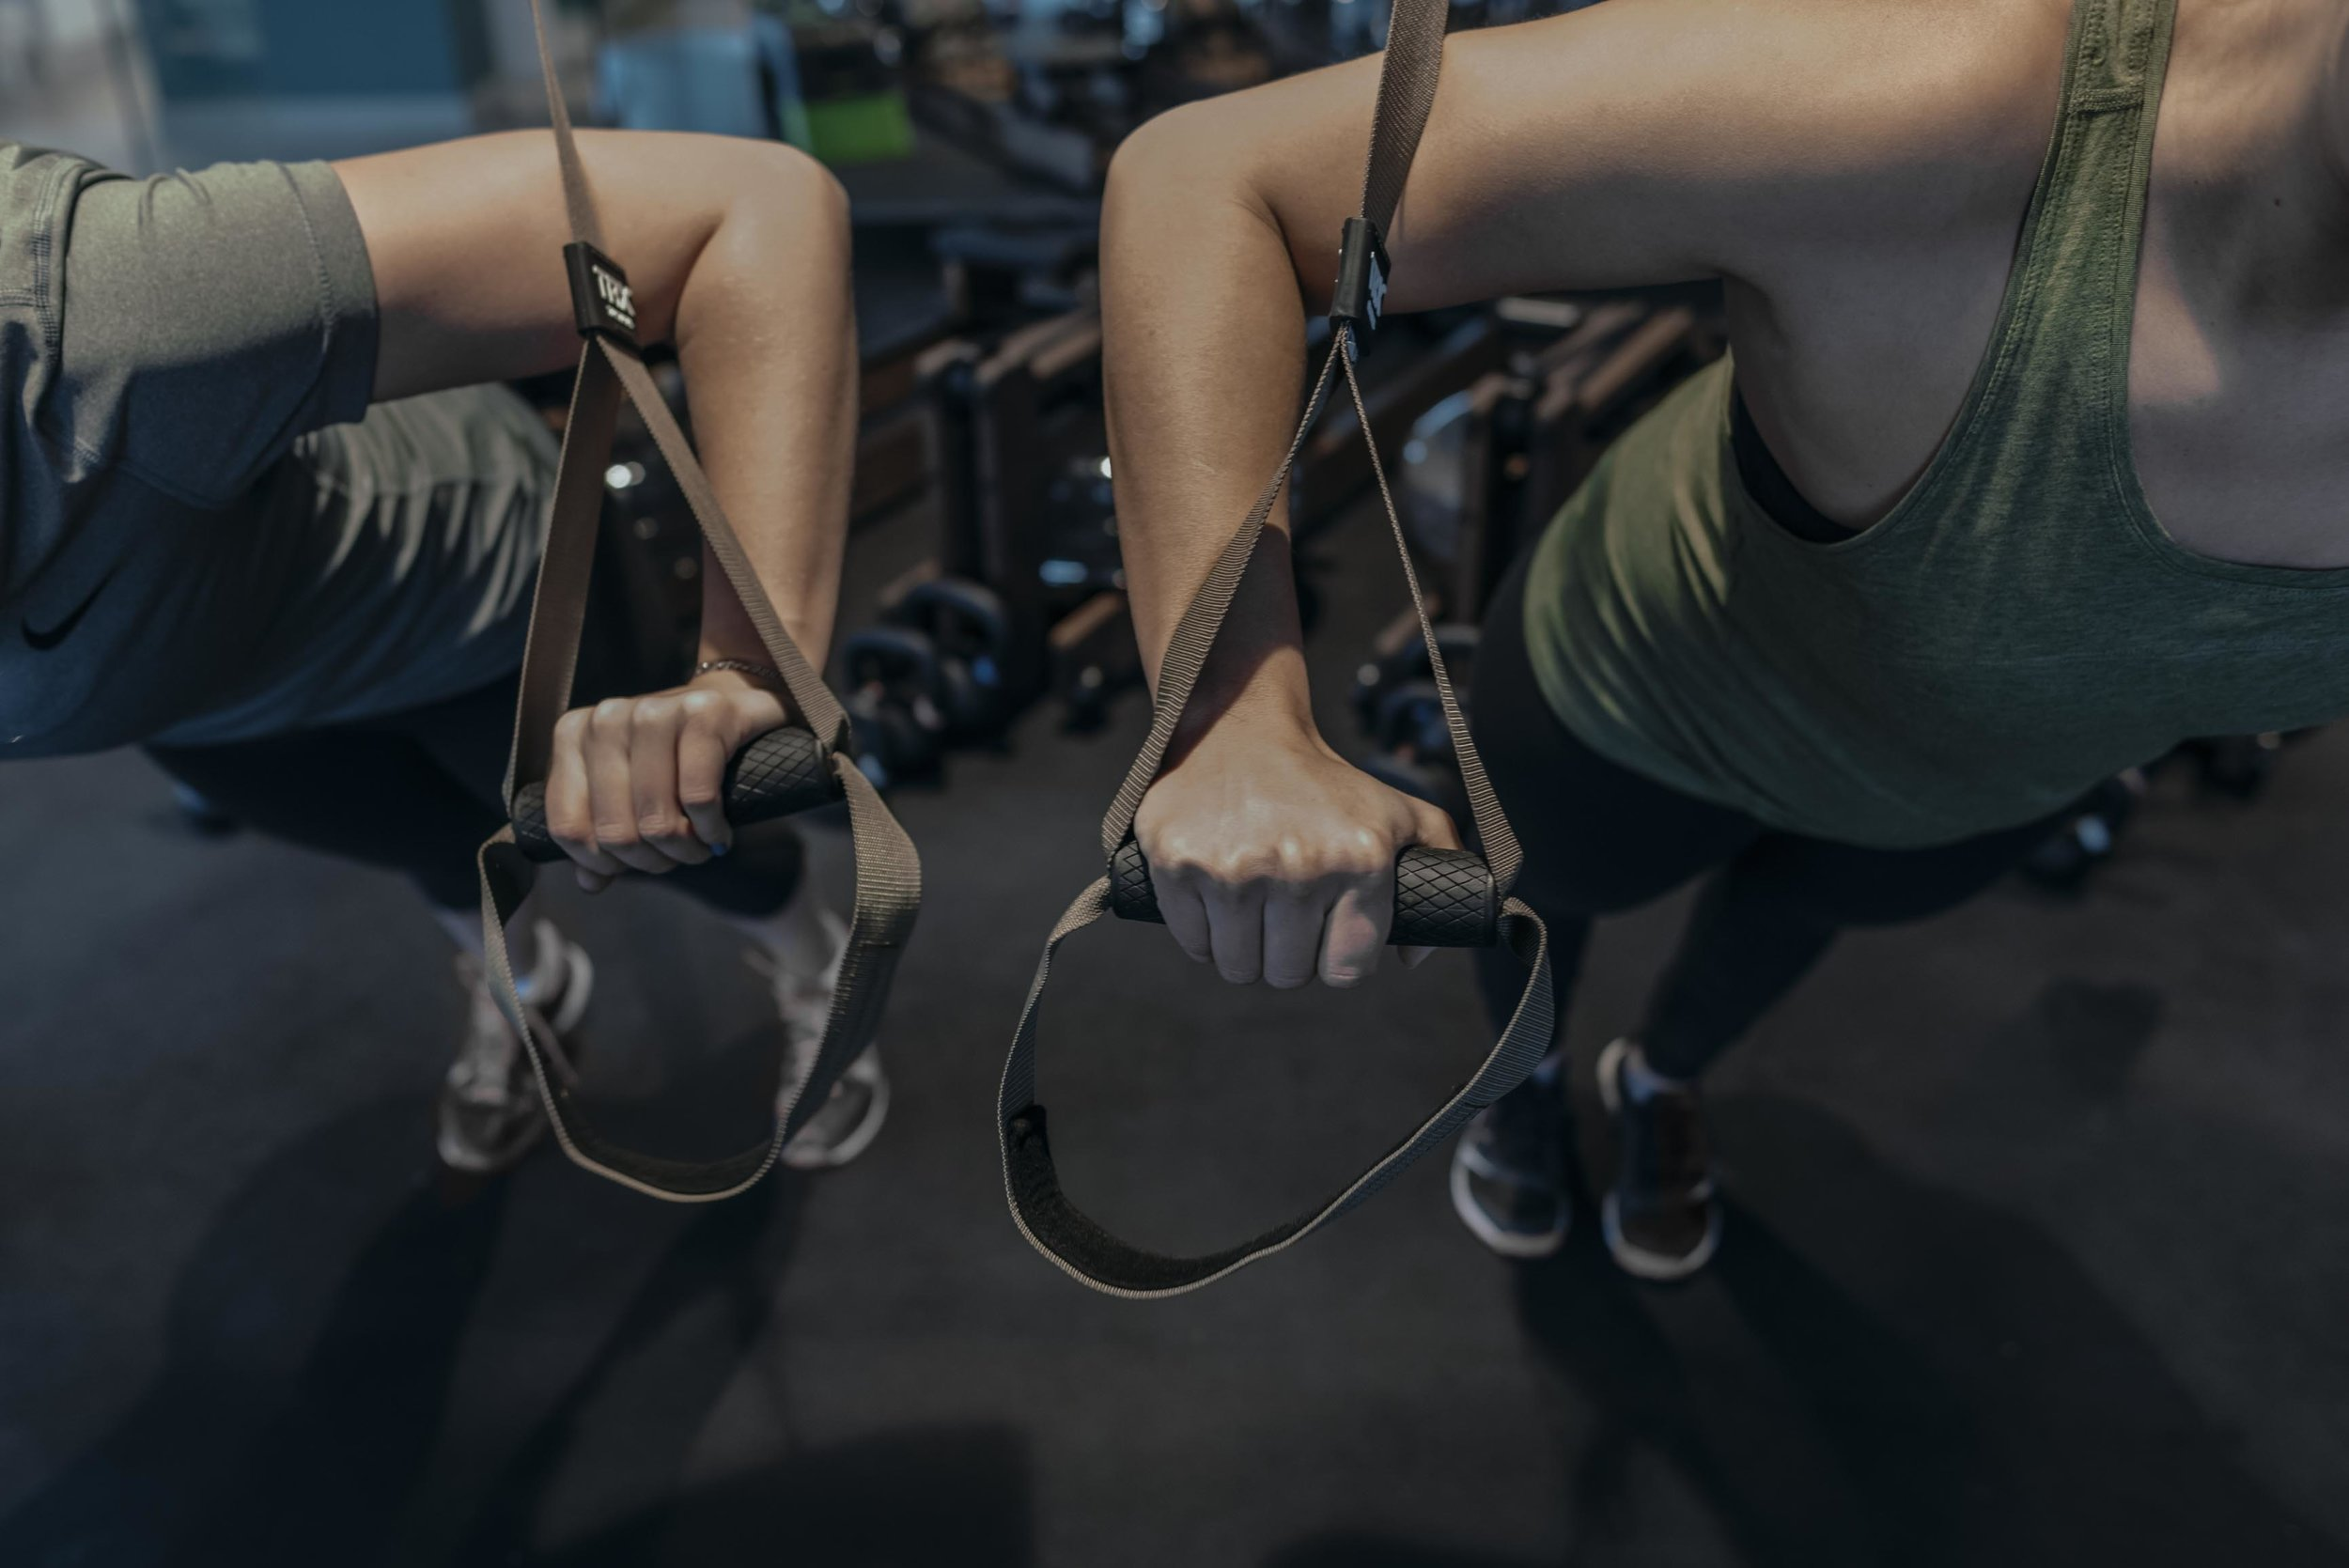 Full Body Strength & Cardiovascular Workout - You will be challenged through a combination of cardio, core and strength intervals to bring out your personal best – all in under an hour! Our workouts change daily so that you don't plateau - keeping workouts fresh and fun.